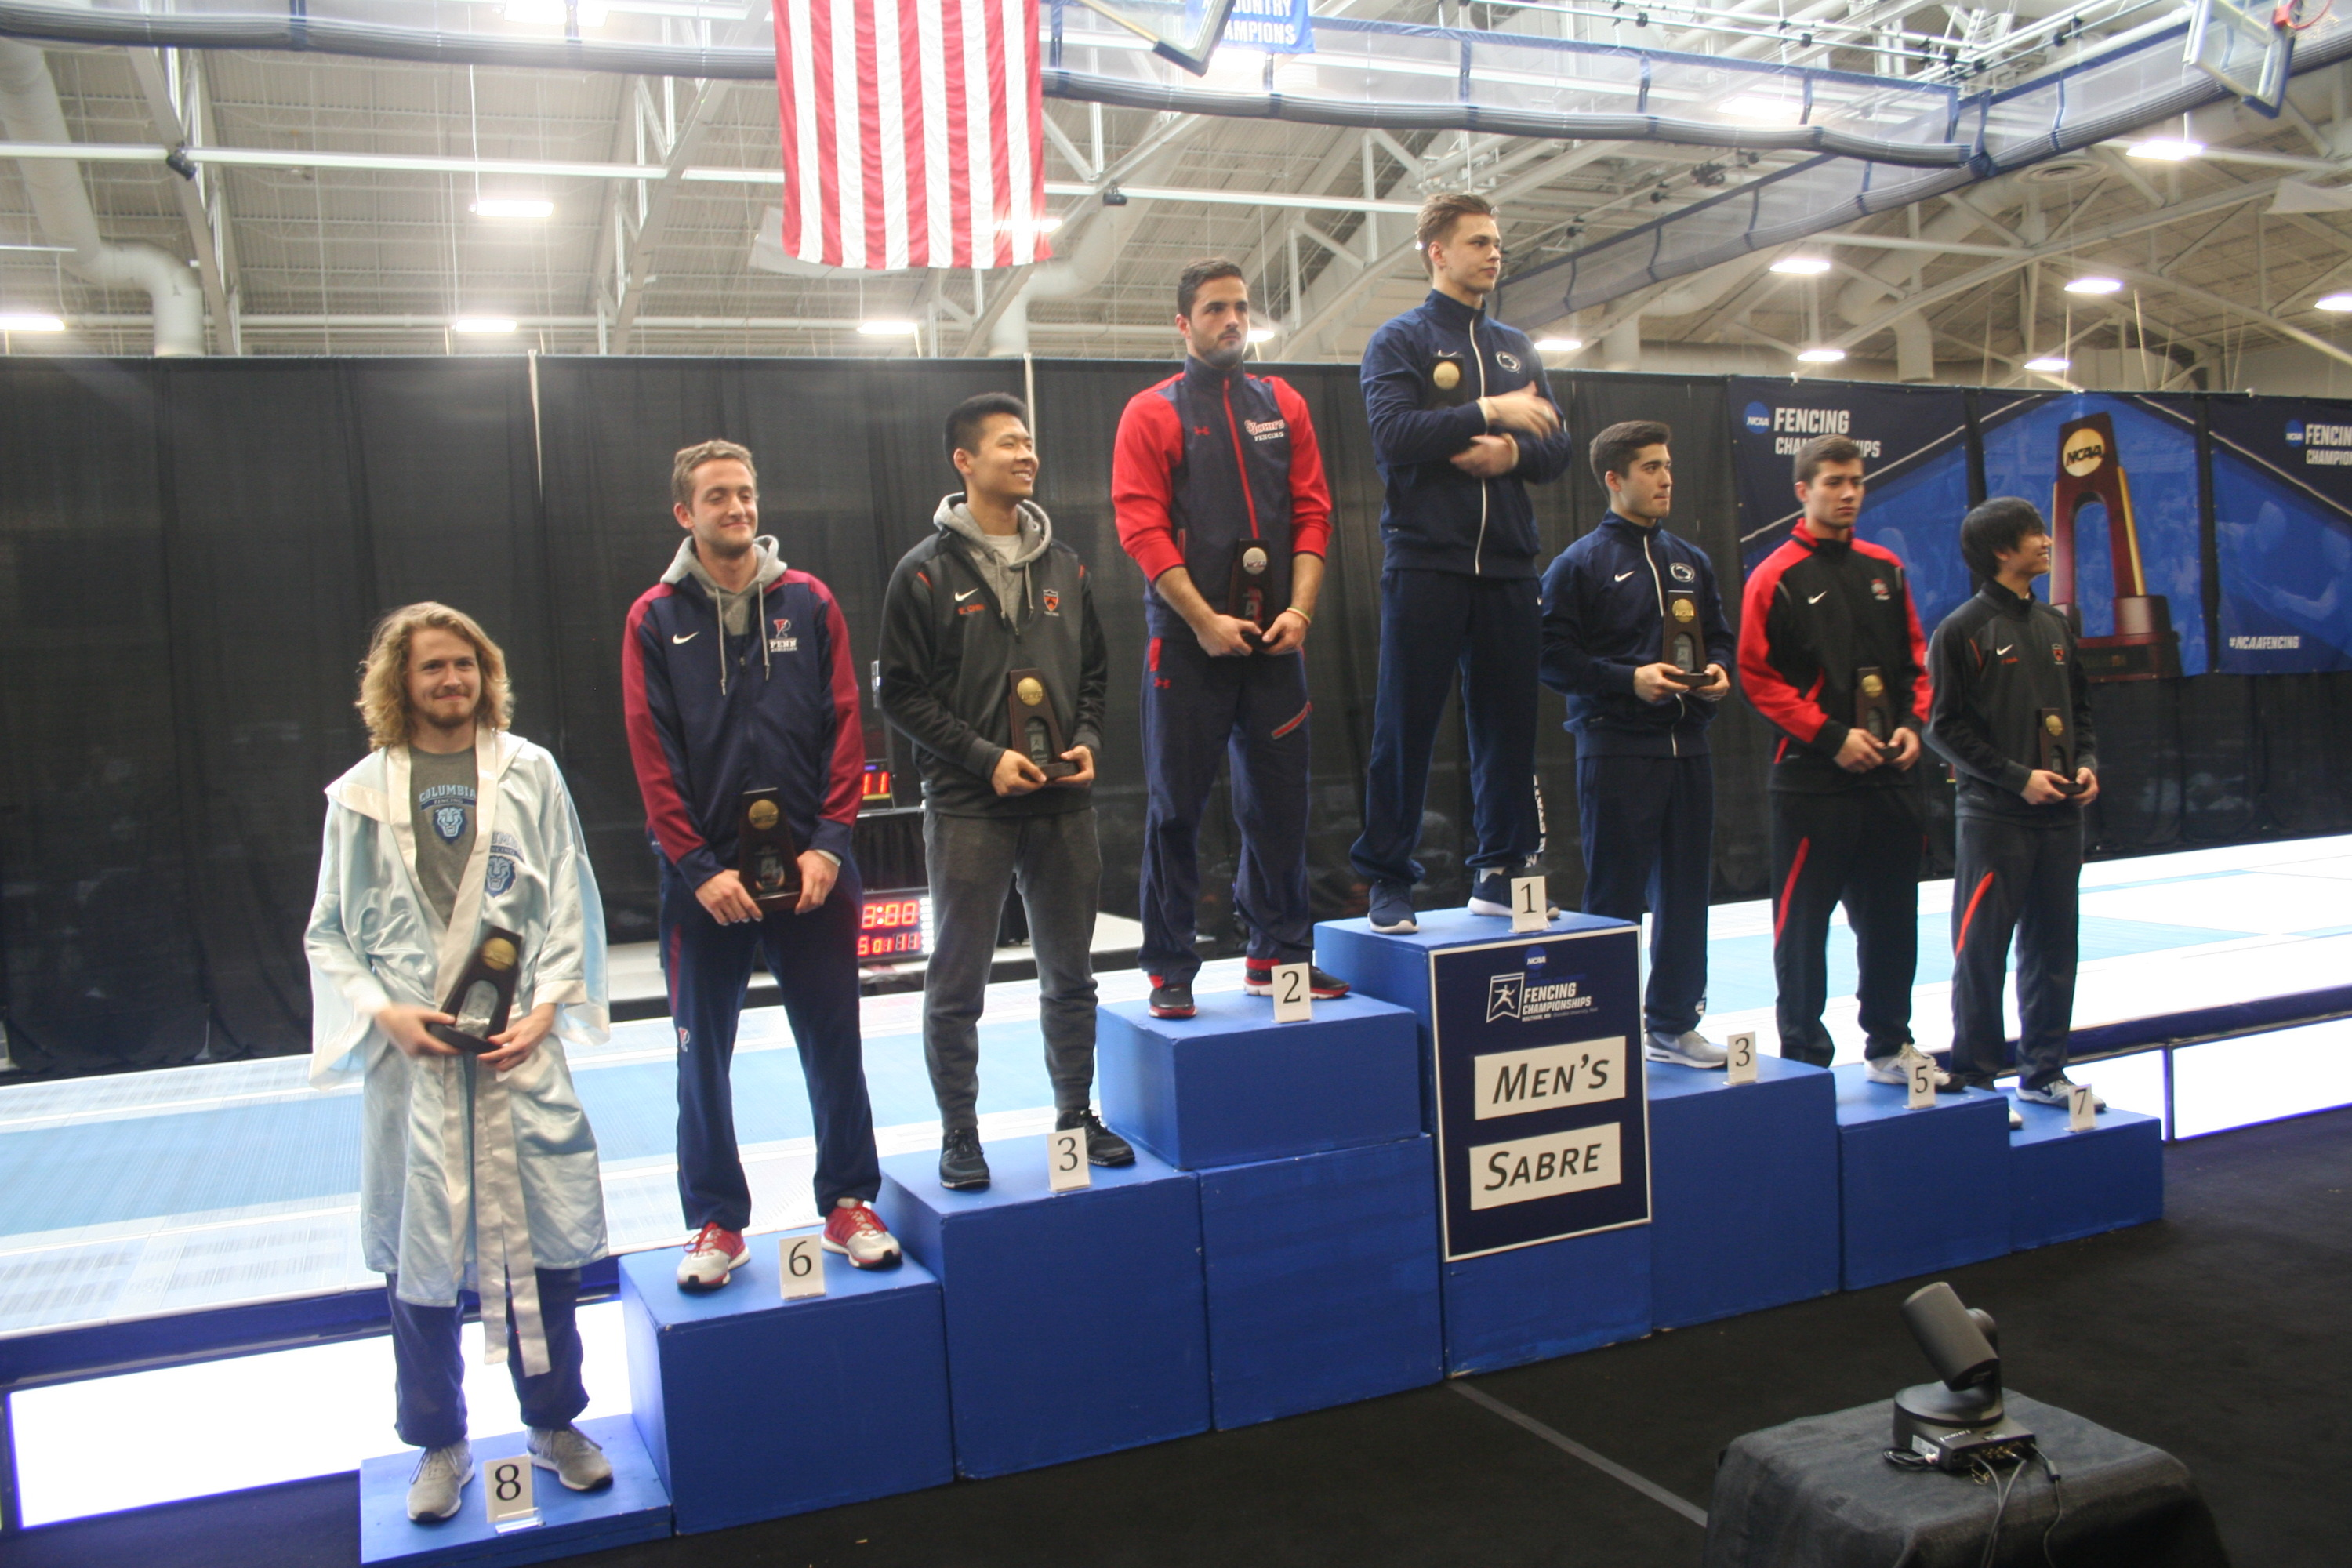 Senior Ferenc Valkai finished second in men's saber for third-consecutive year at the NCAA Fencing Championships.